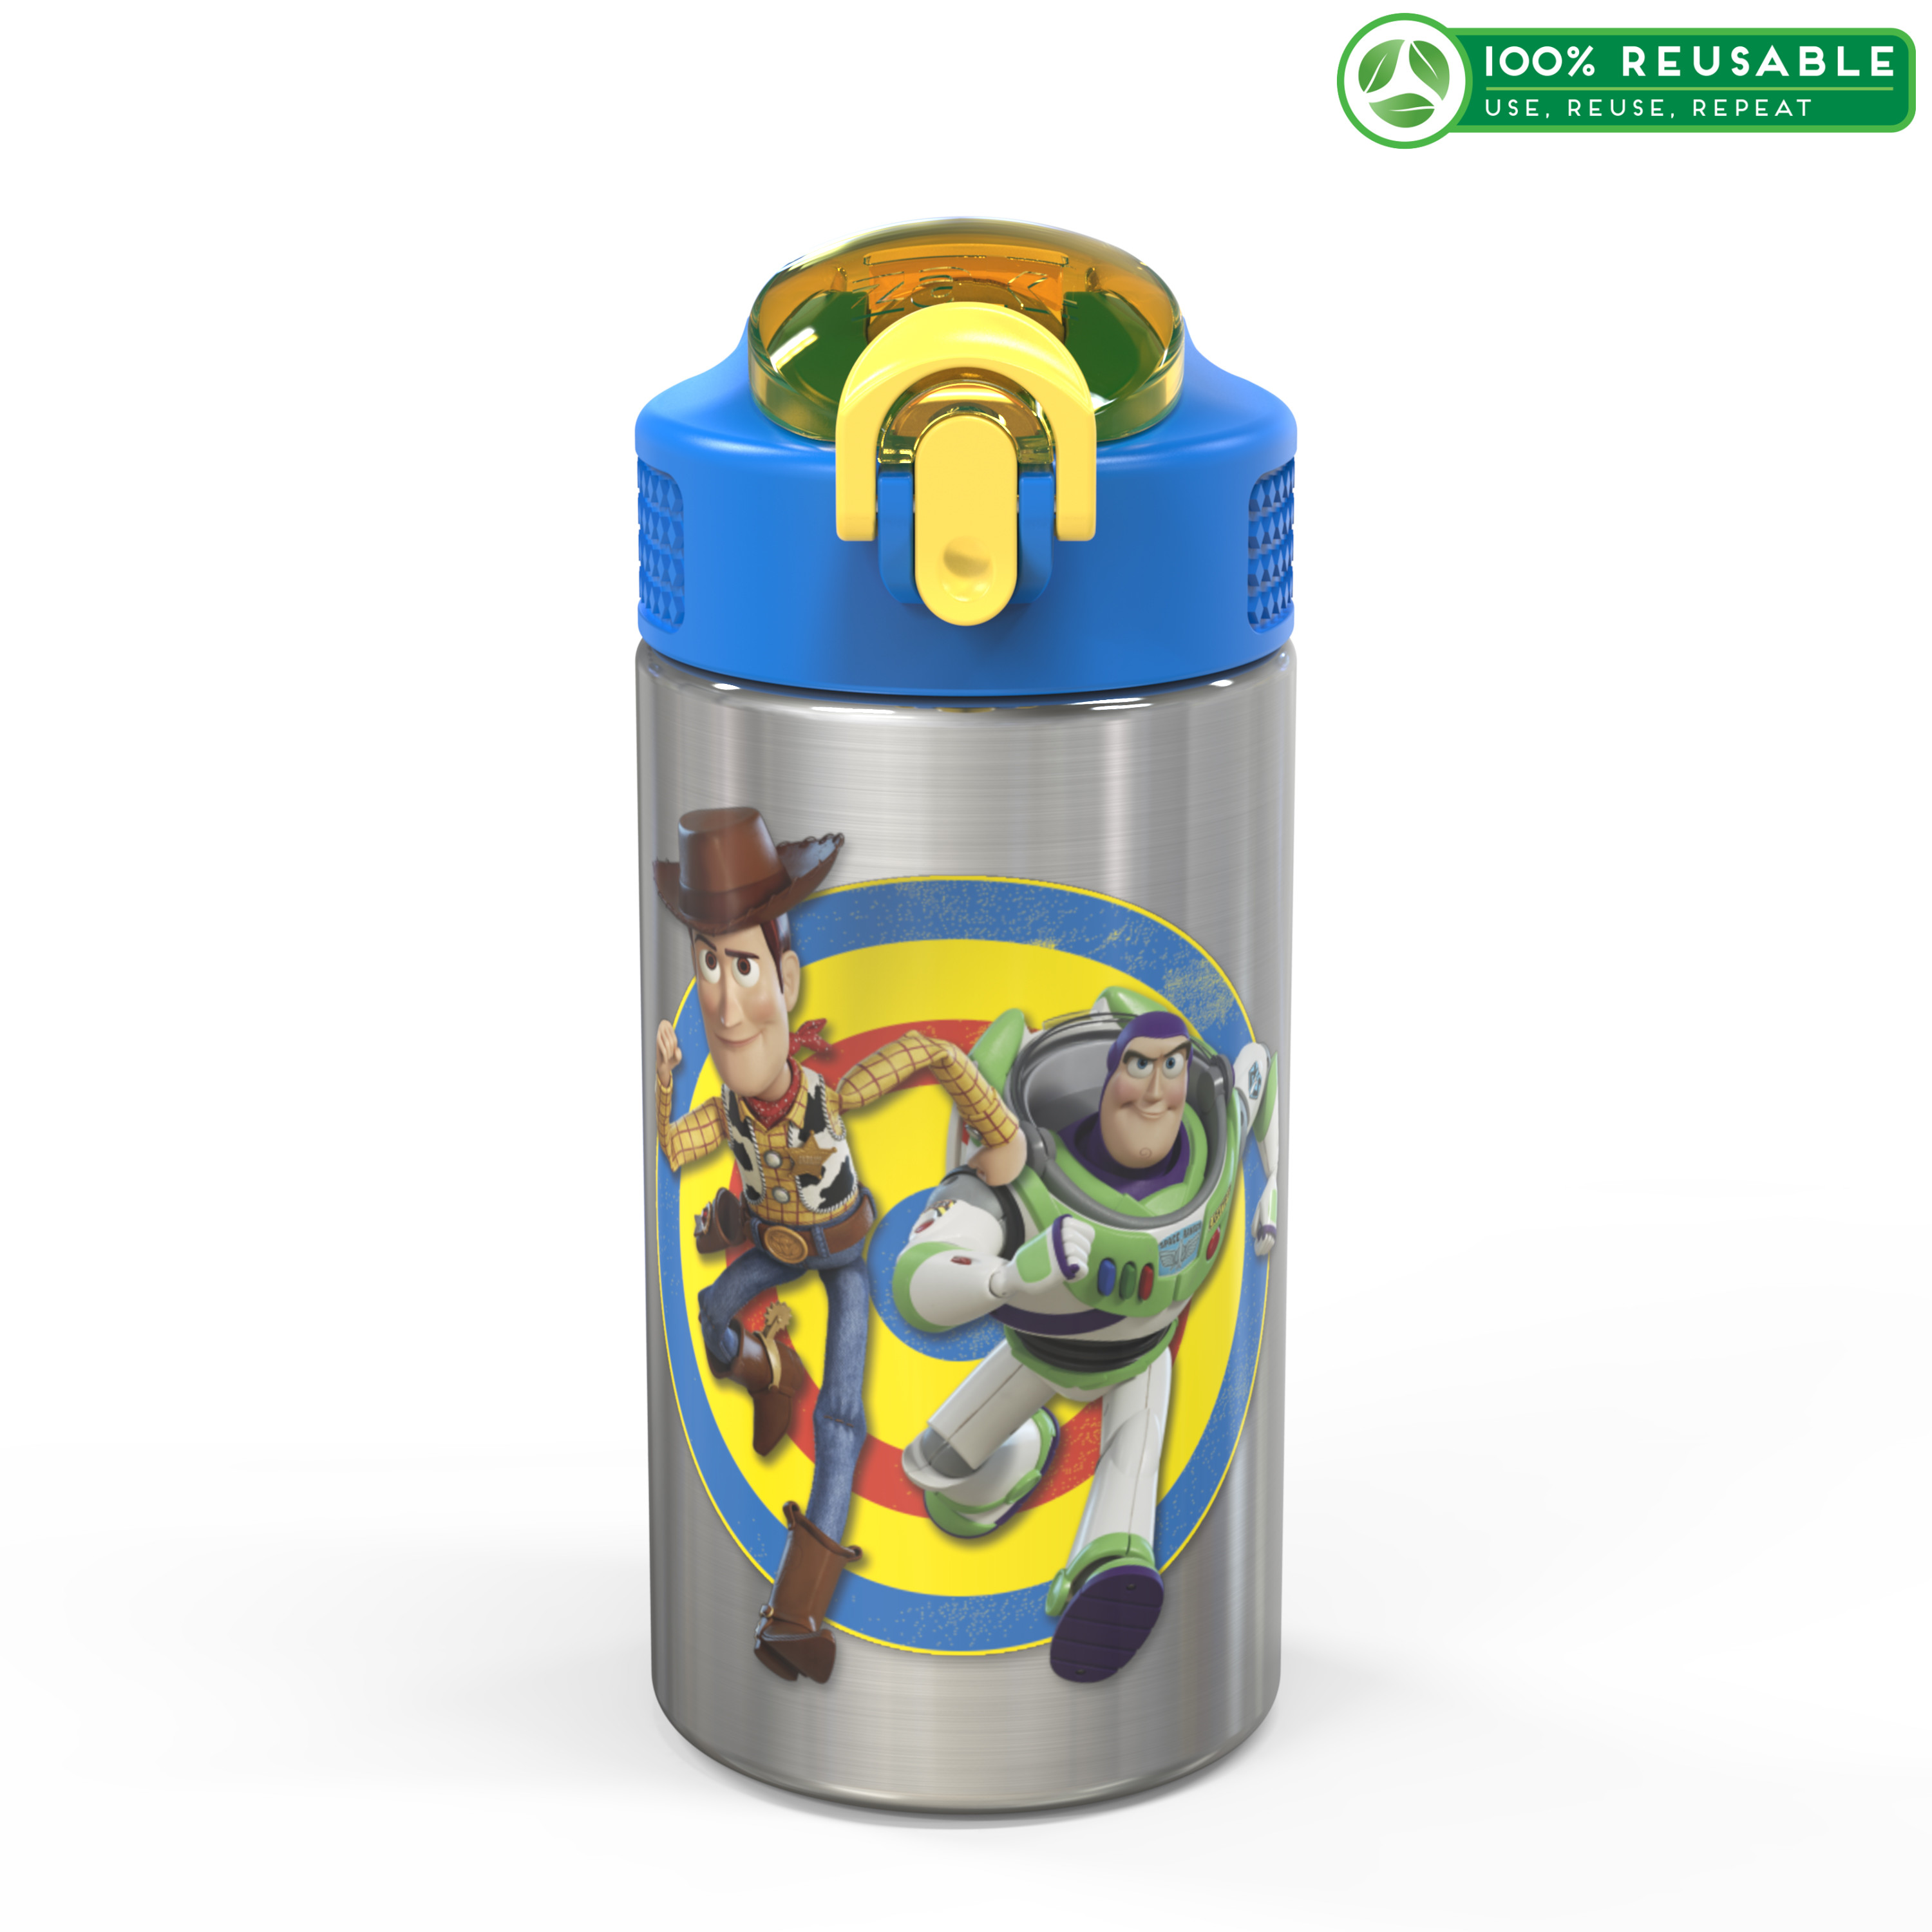 Toy Story 4 Movie 15.5 ounce Water Bottle, Buzz and Woody slideshow image 1